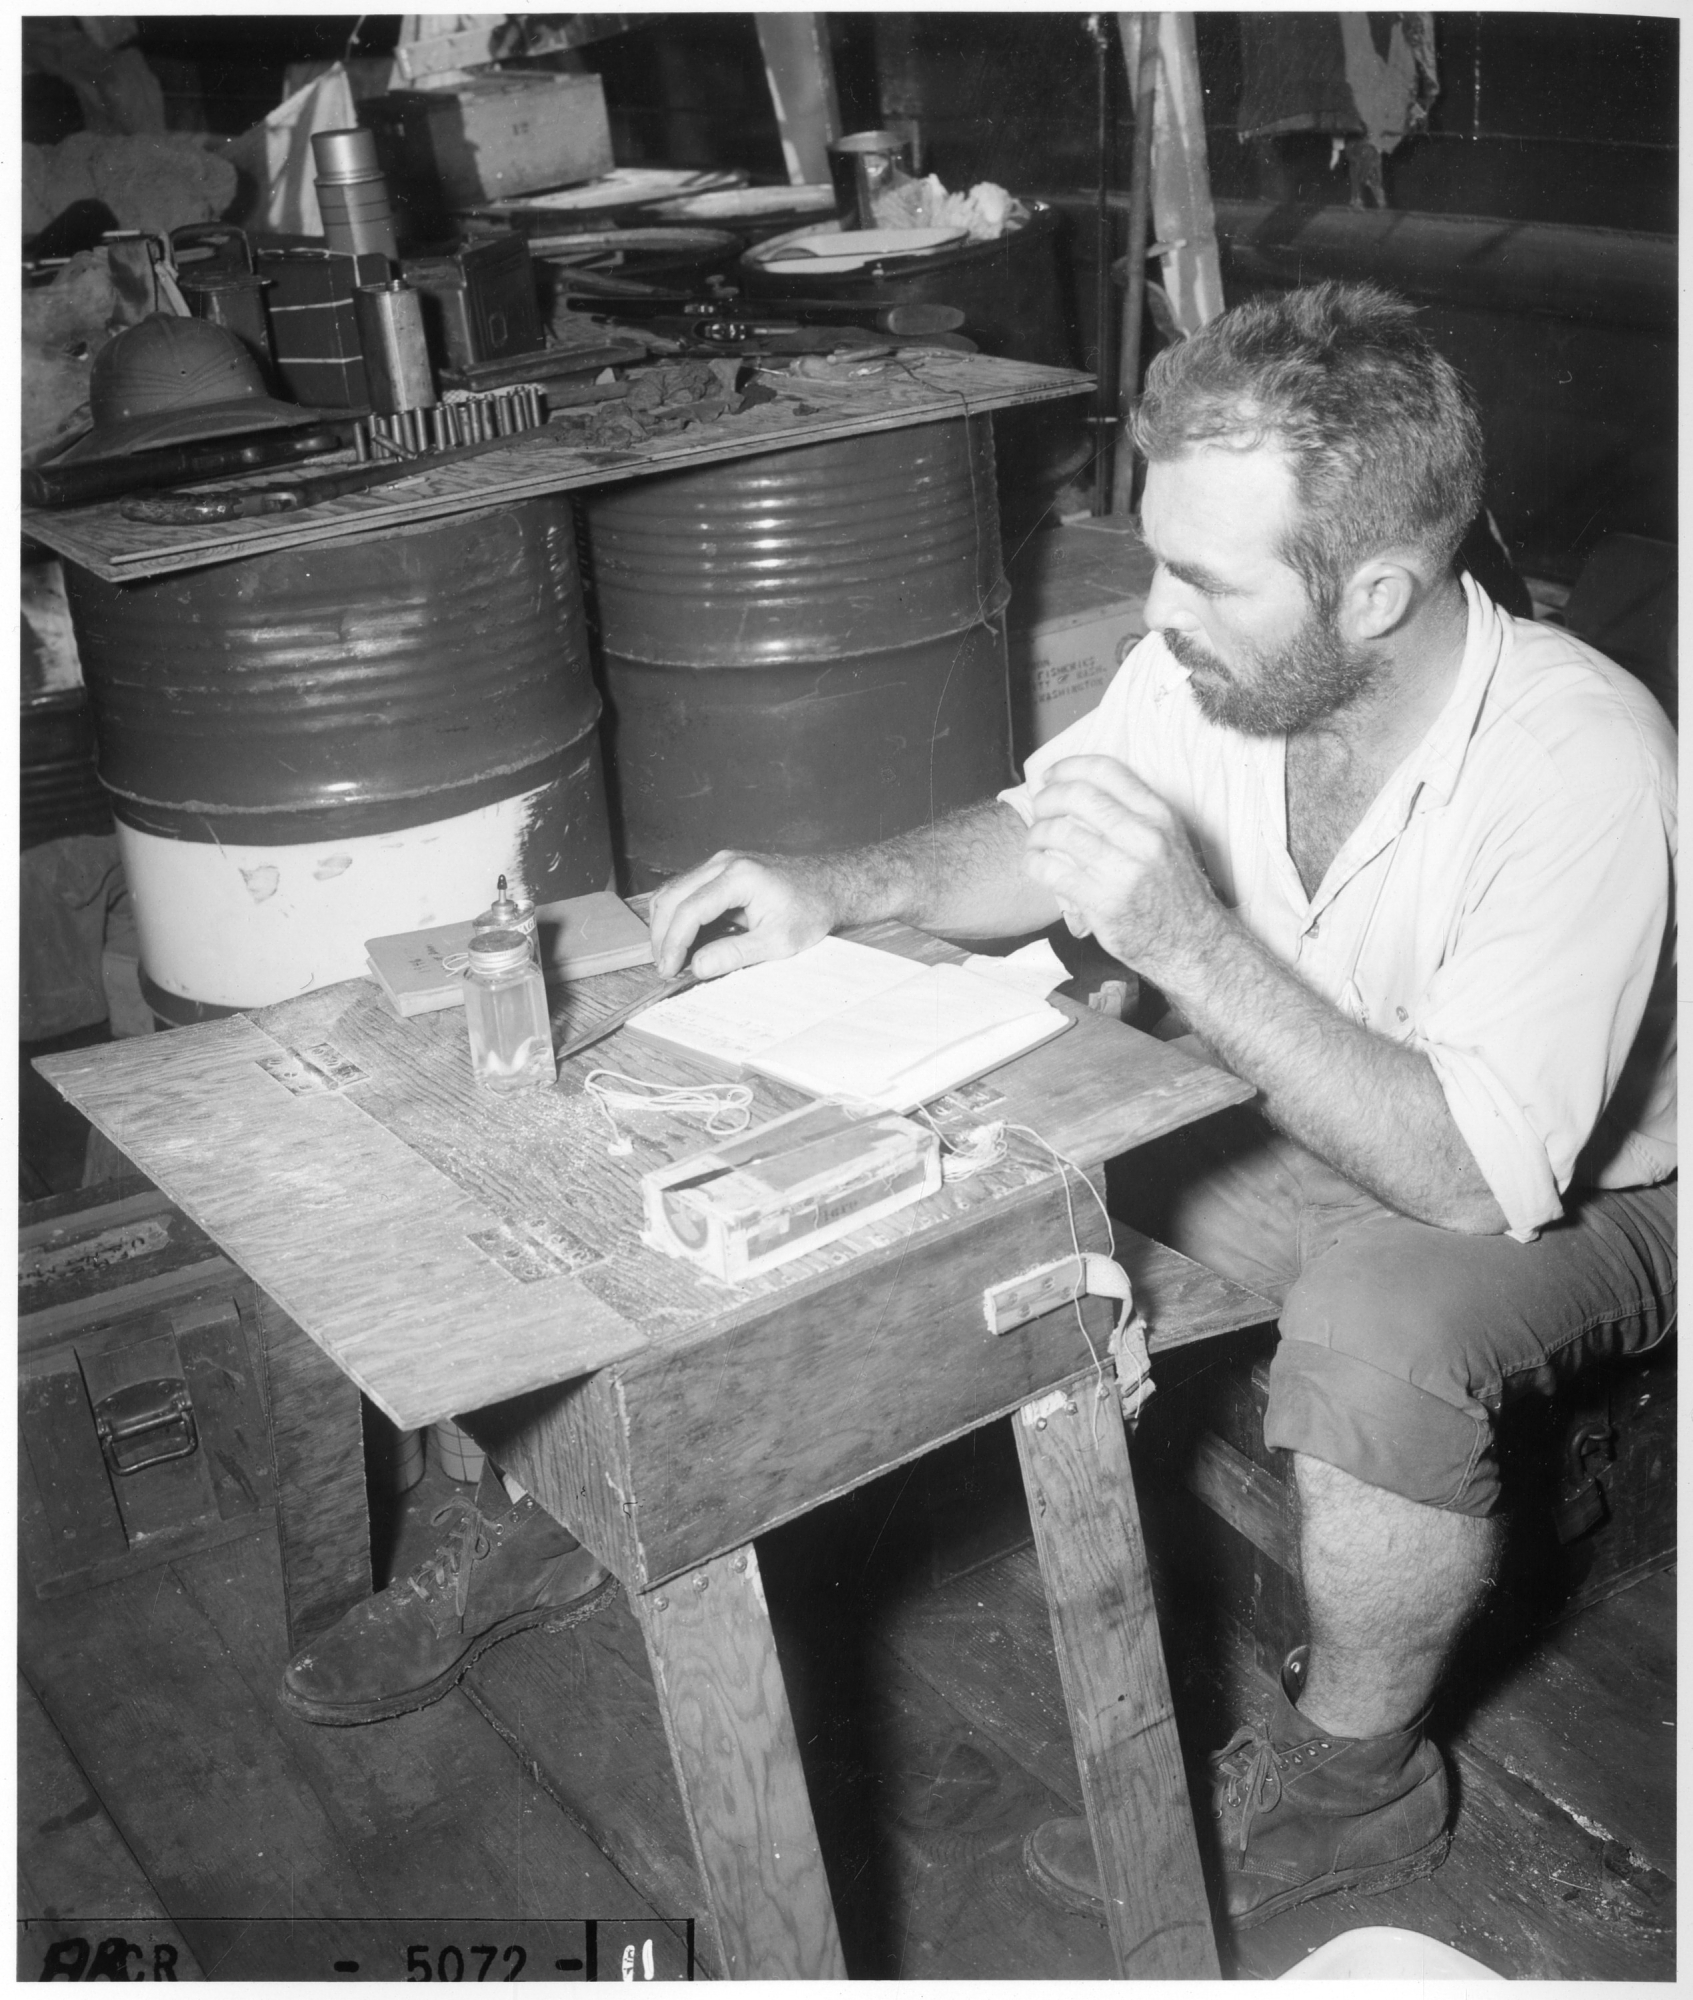 Joseph P. E. Morrison working aboard a ship at Bikini Atoll, 1947.